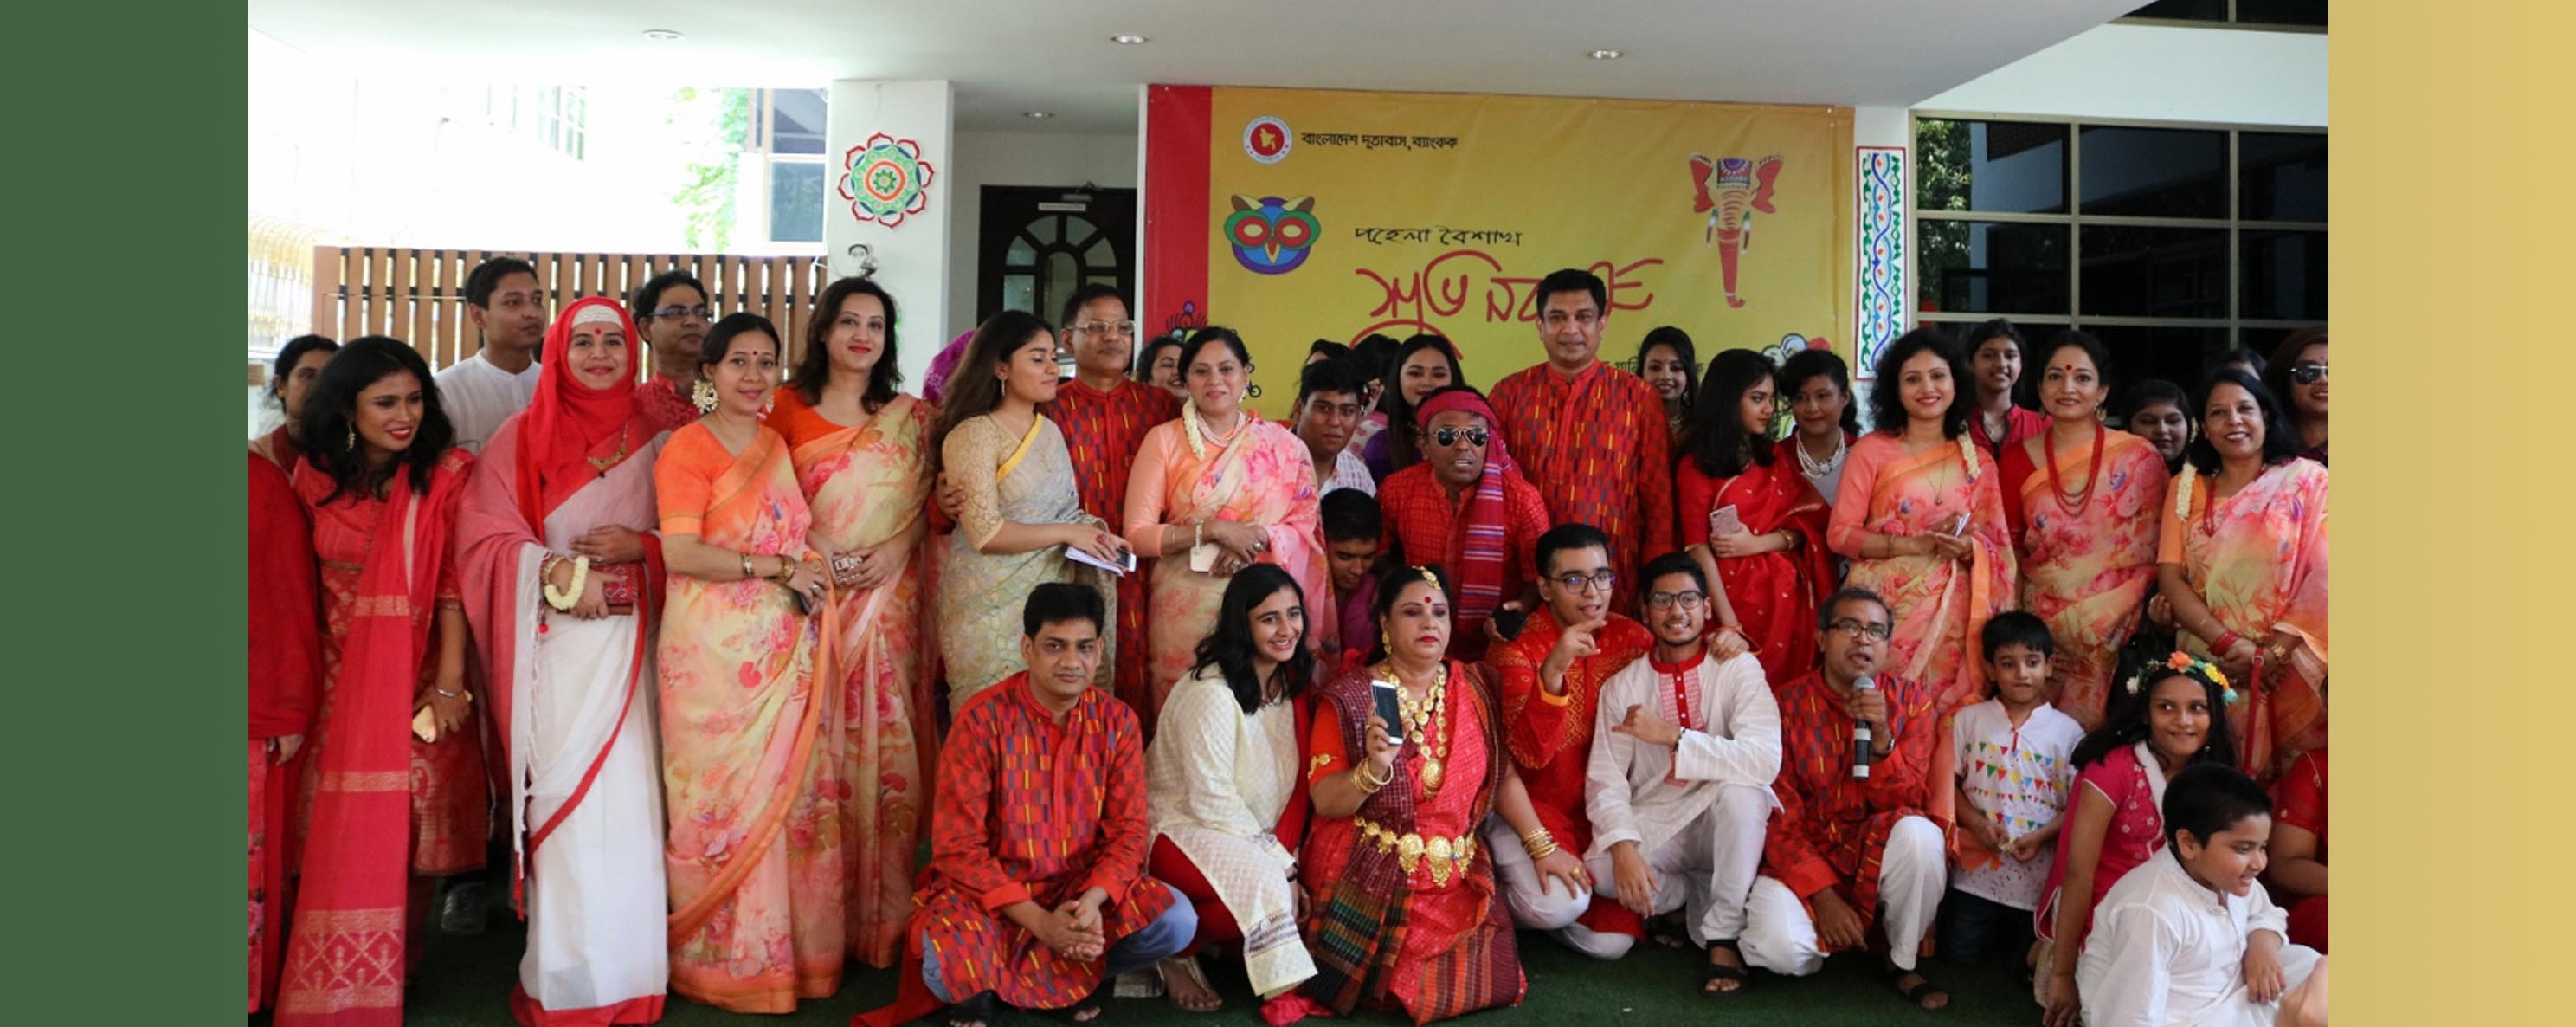 The Embassy celebrated 'Pohela Baishakh' 1426 with a colorful 'Boishaki Mela', festive presentation of deshi Bangla food and a lively cultural show.